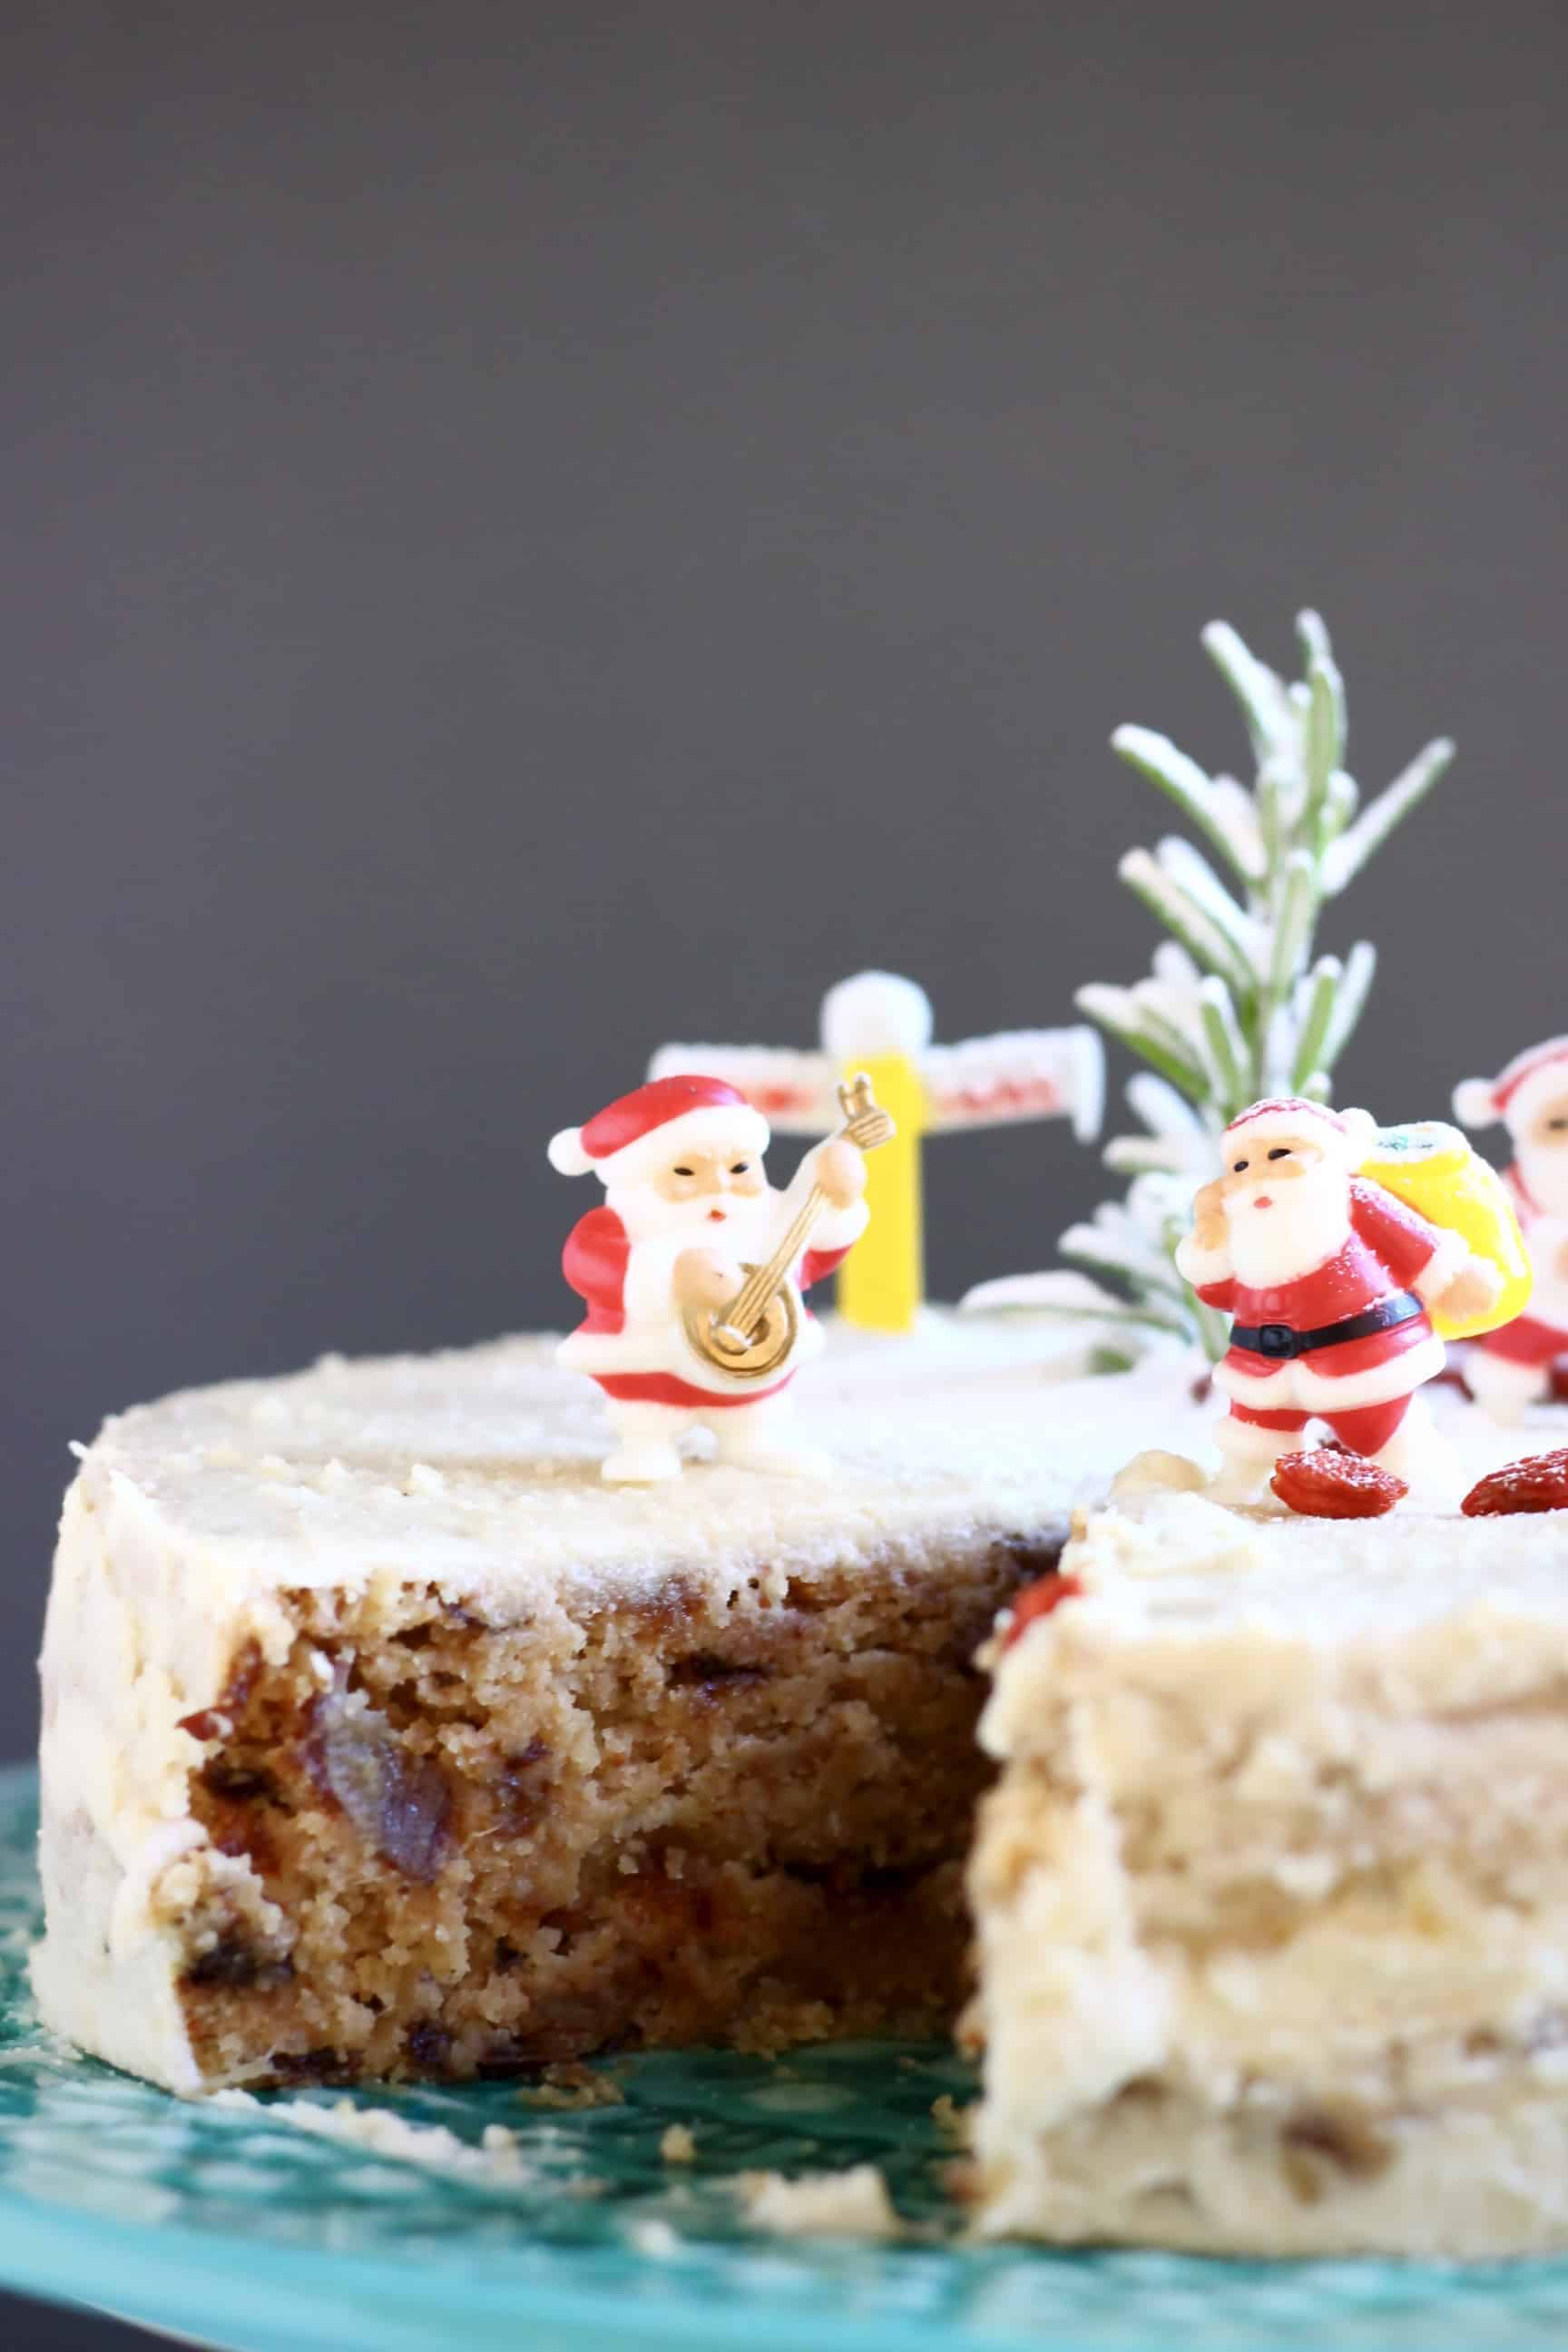 A sliced gluten-free vegan Christmas fruit cake covered in white buttercream and decorated with Christmas decorations